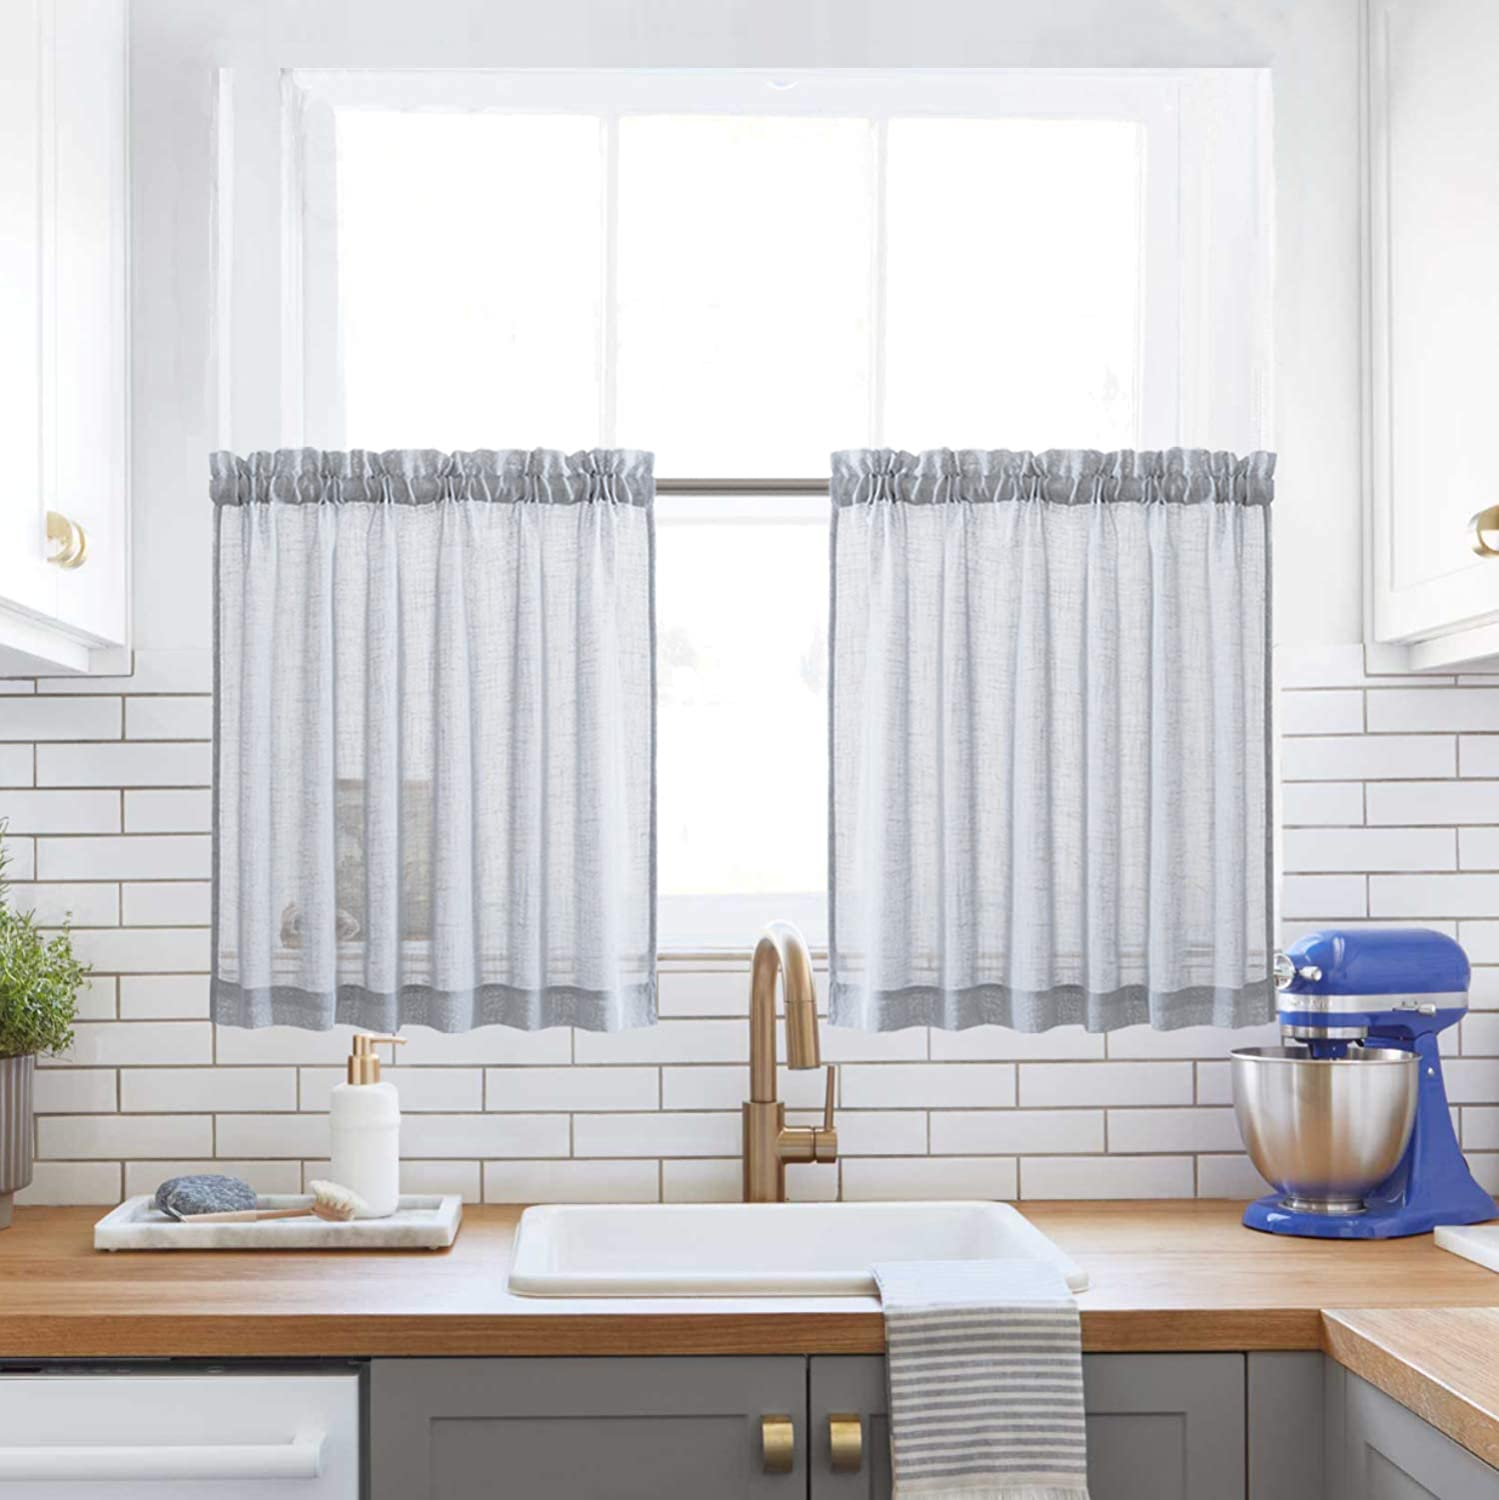 Grey Kitchen Tier Curtains Rod Pocket Privacy Challenge the lowest price of Japan Linen Challenge the lowest price of Japan Semi Sh Like